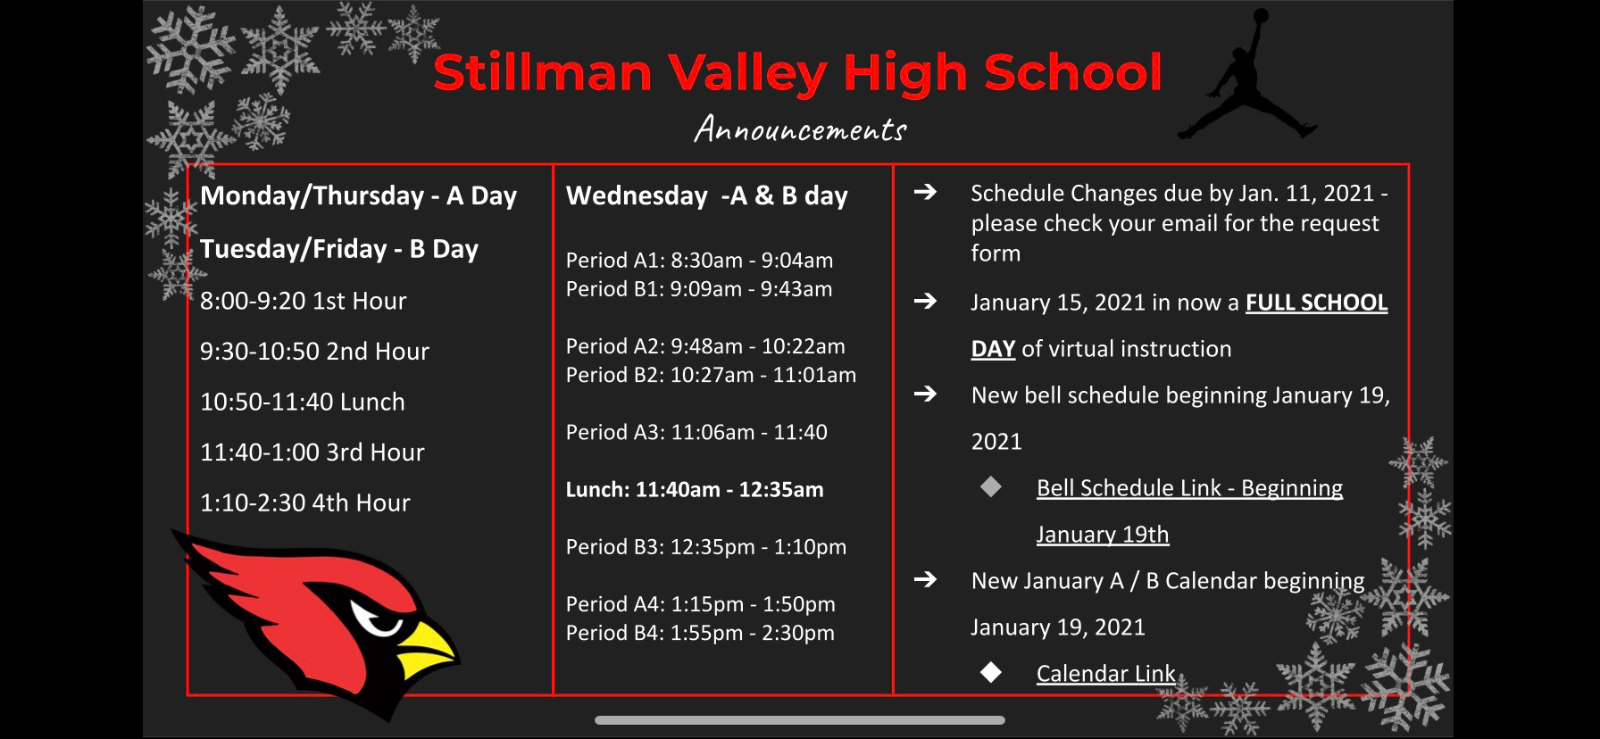 SVHS Announcements as of Jan. 11